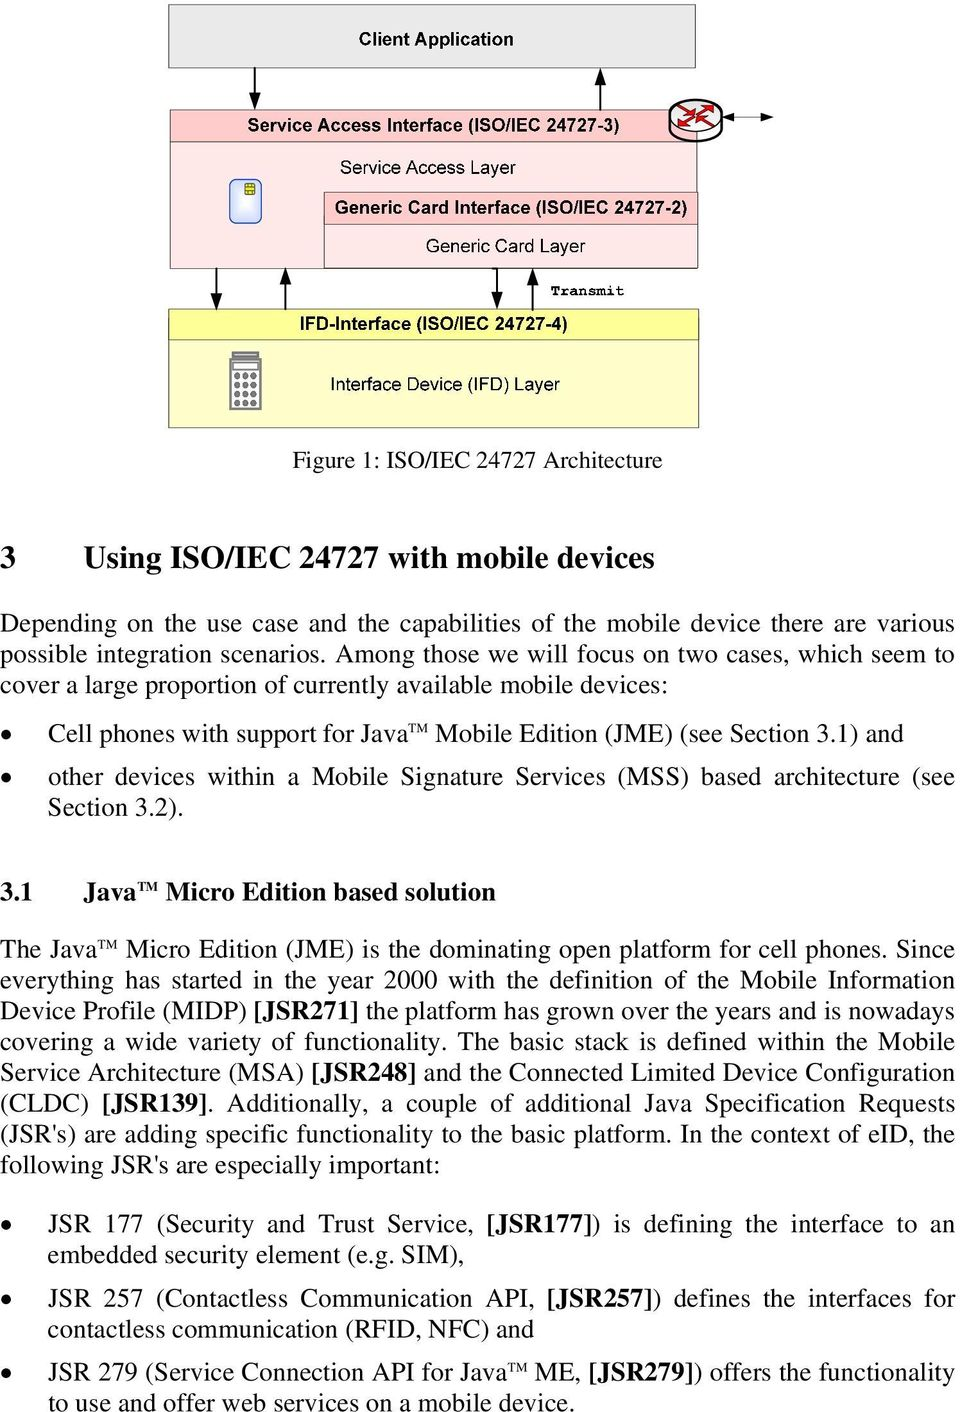 1) and other devices within a Mobile Signature Services (MSS) based architecture (see Section 3.